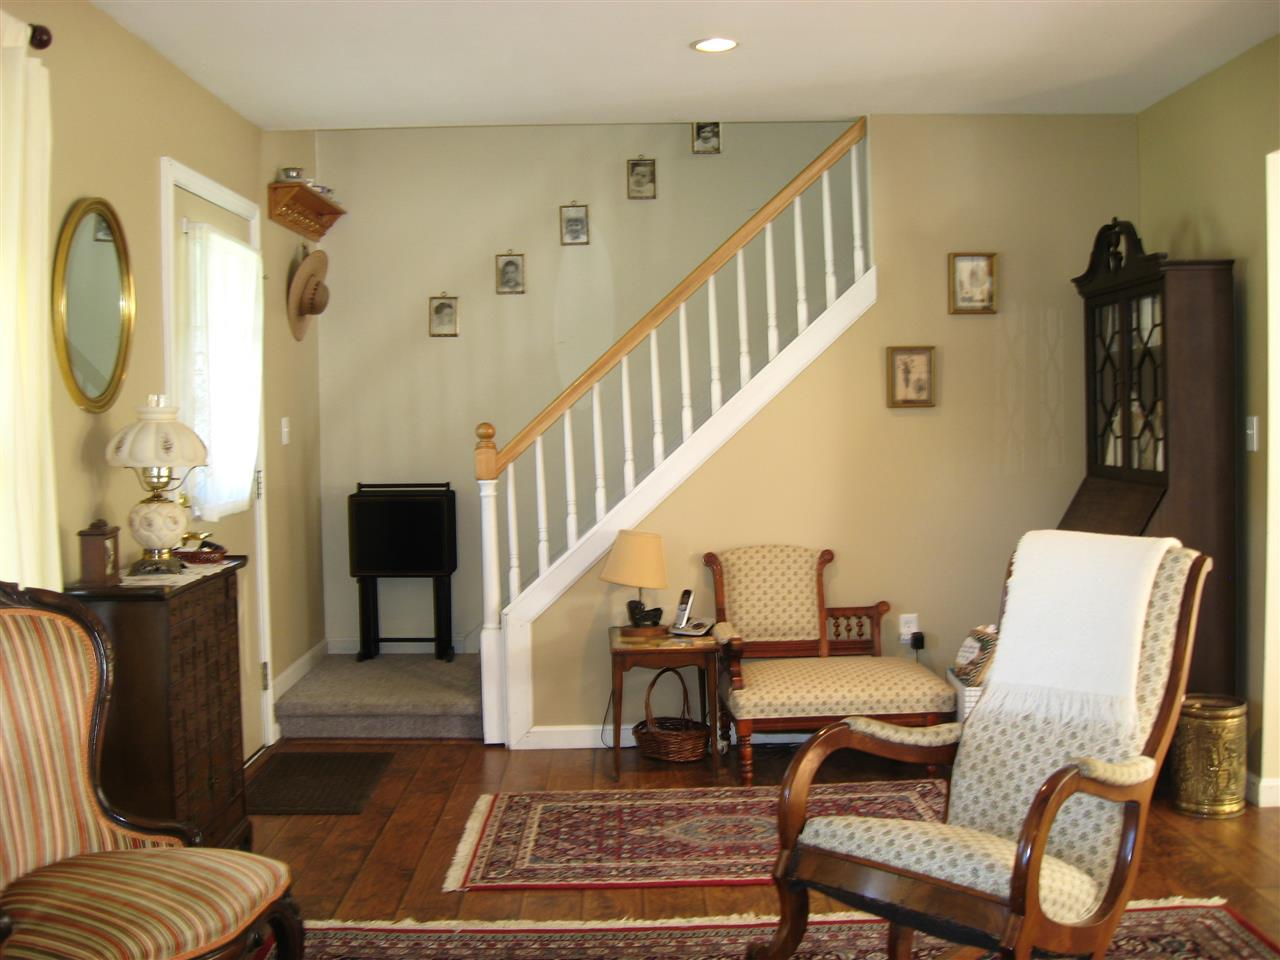 Pretty stairway to 2 bedrooms/bath 11169310